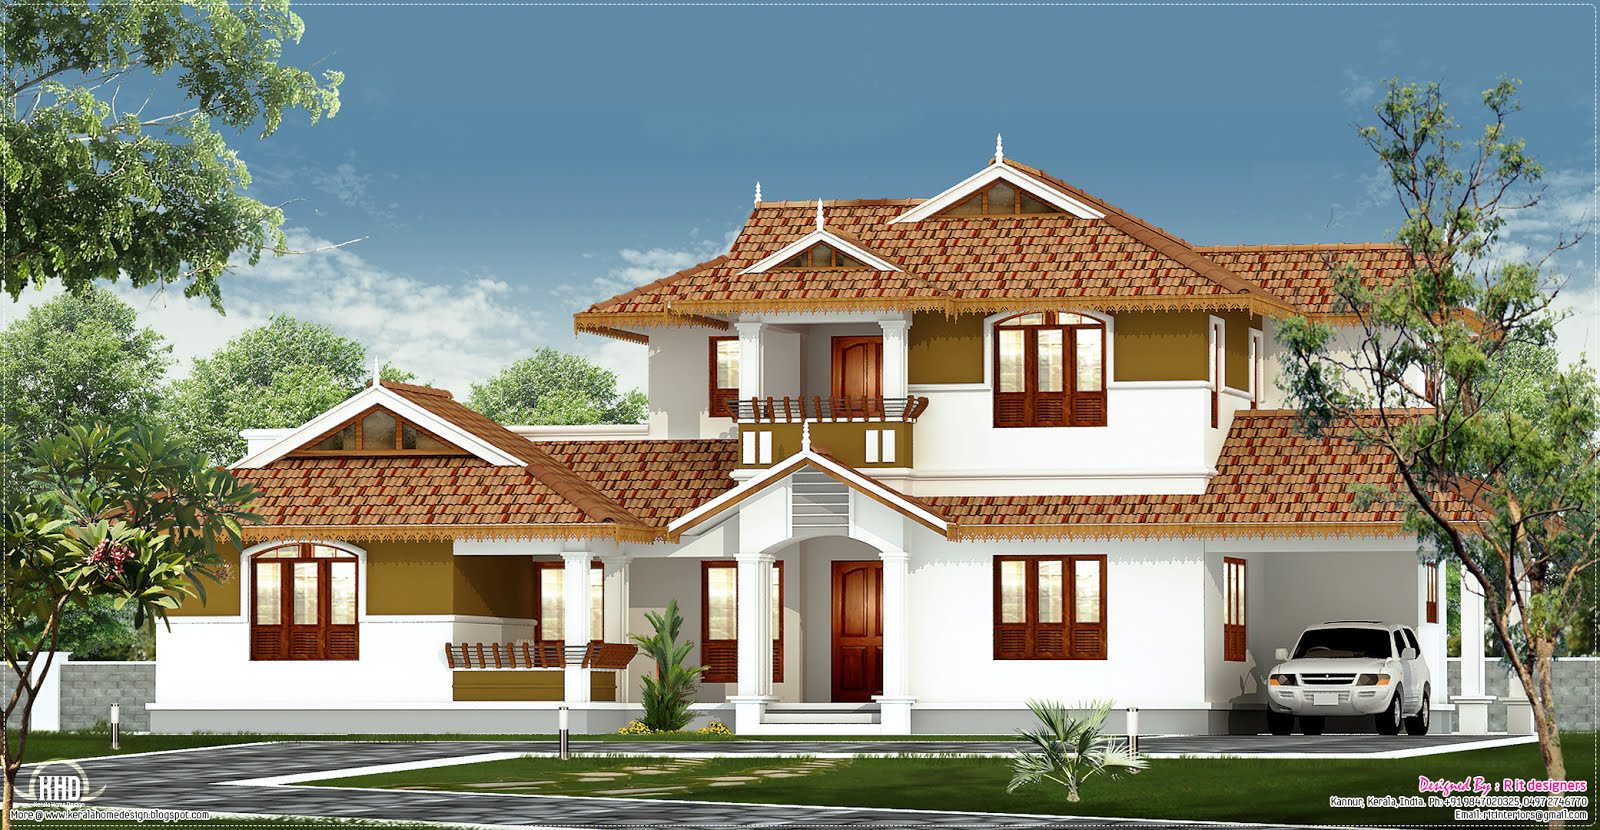 2200 Sqft Home Design on Floor Plans 1700 Square Feet 3 Bedroom